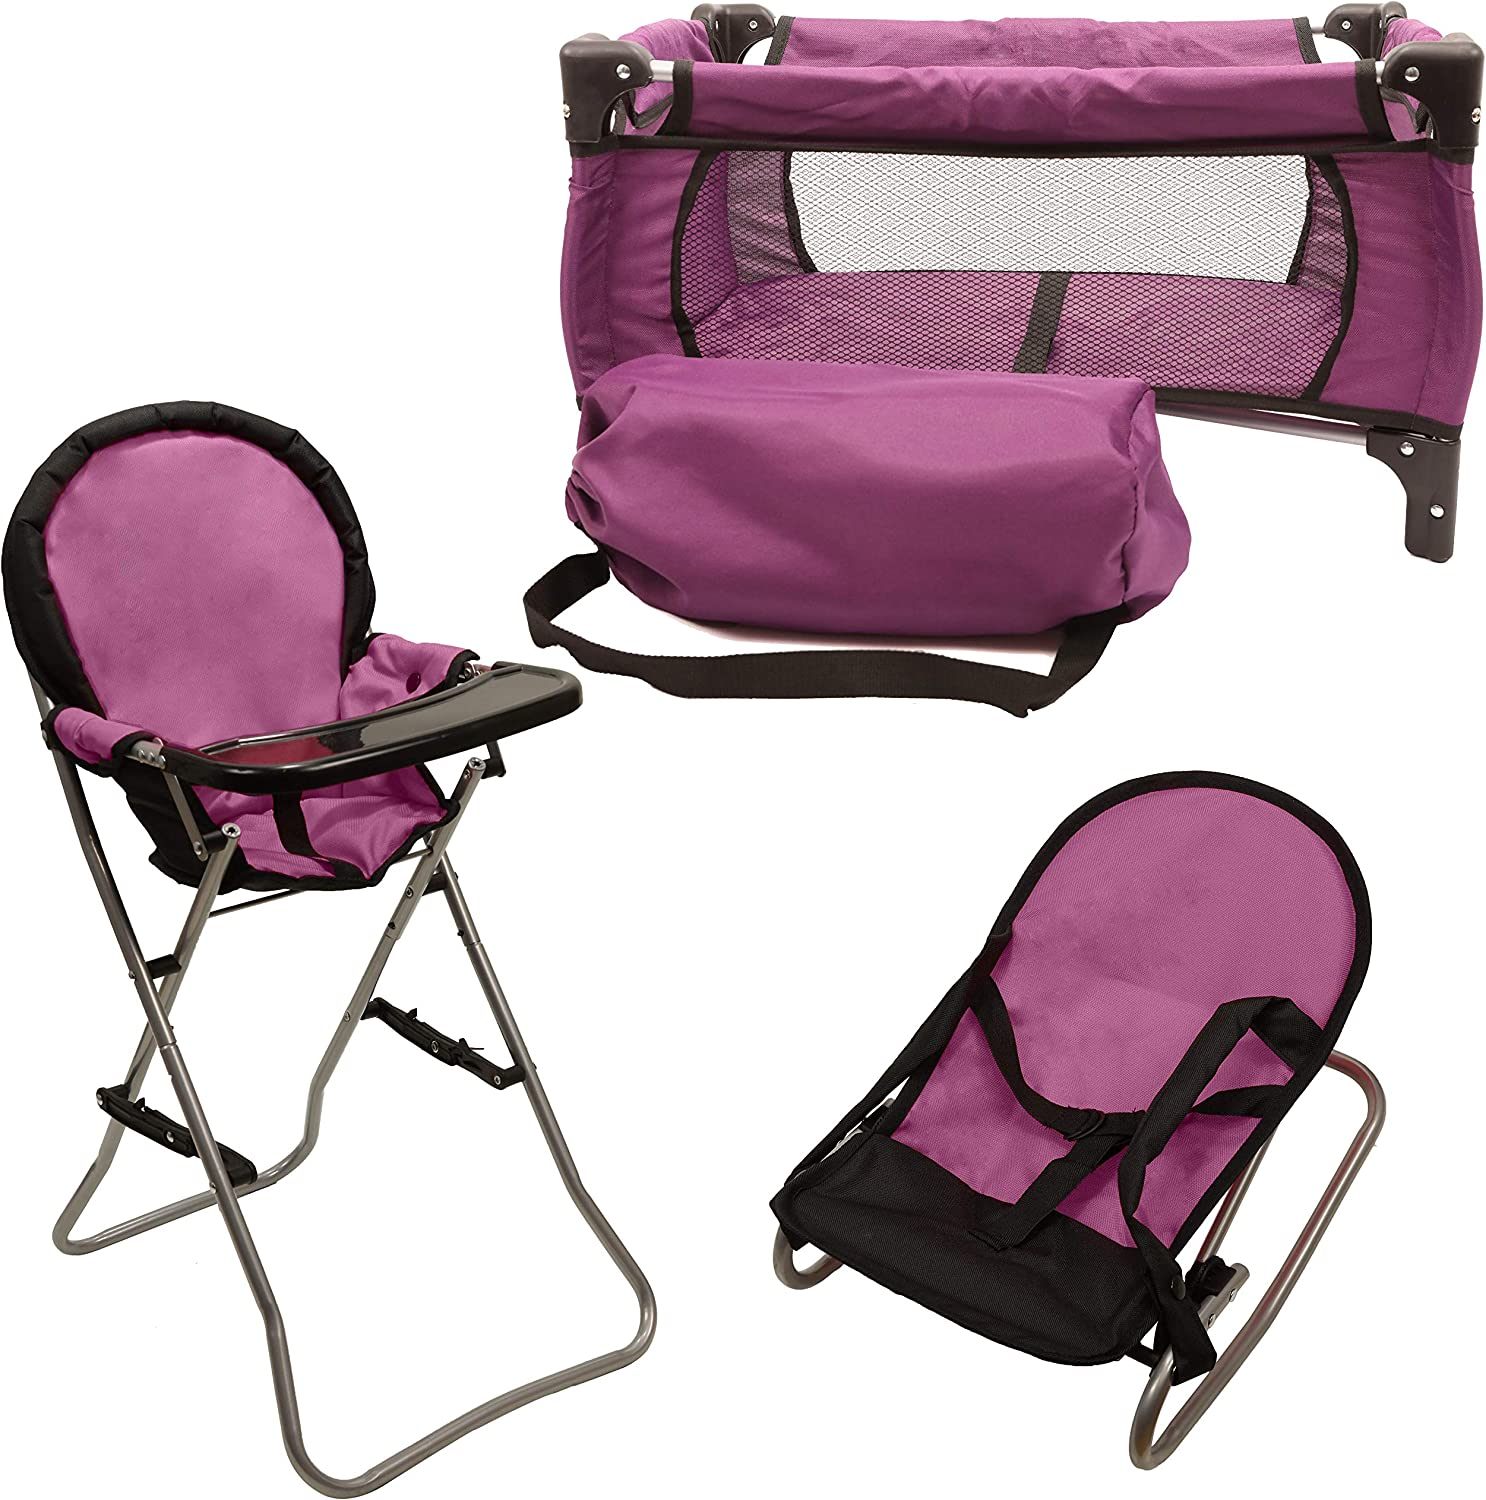 Mommy & Me 3 In 1 Baby Doll Accessories Mega Deluxe Playset with Doll High Chair, Doll Bouncer, and Doll Pack N Play Baby Doll Crib, Fits 18 Inch American Girl Doll, Purple : Toys & Games